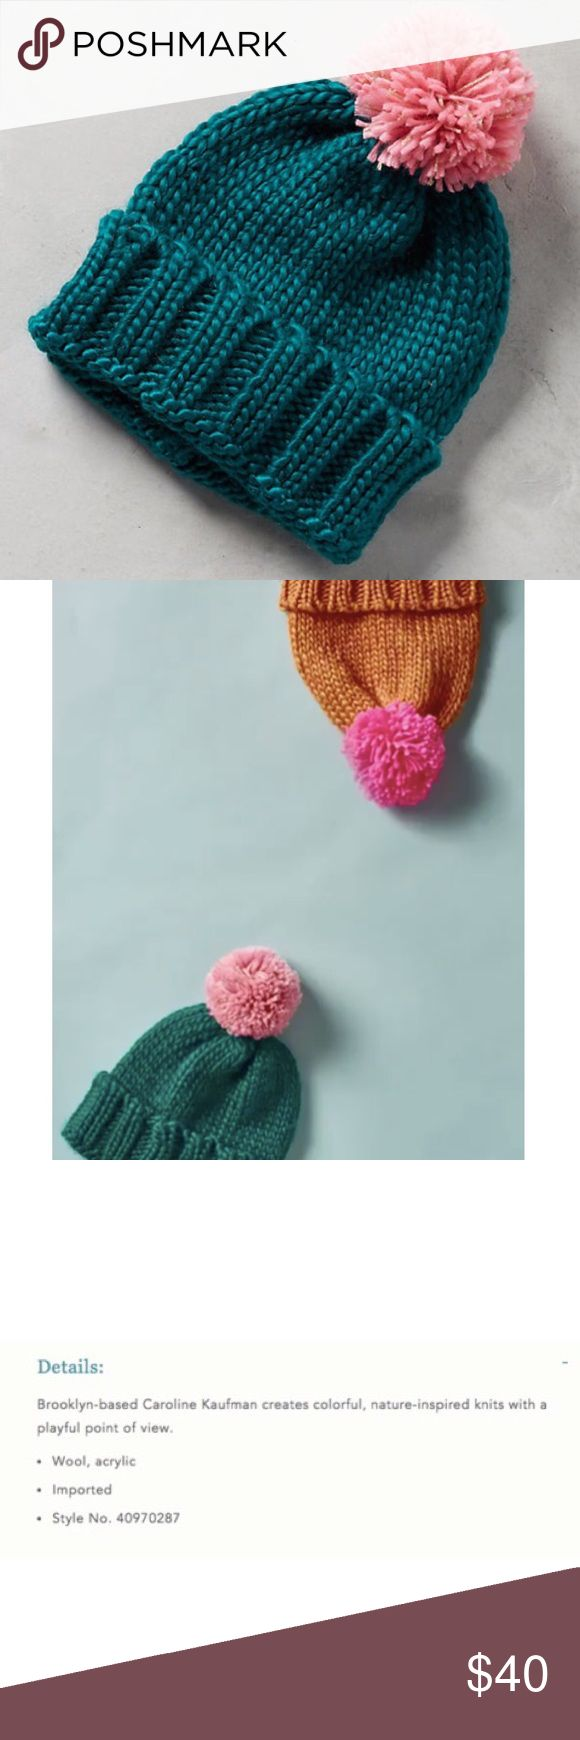 Anthropologie Caroline Kaufman Teal Midtown Beanie Details: Brand new with tags. Color: Teal with pink pom. This popular Beanie is completely sold out. Brooklyn-based Caroline Kaufman creates colorful, nature-inspired knits with a playful point of view. Toasty warm with a whimsical touch for wintry weather. Wool, acrylic Imported Style No. 40970287 Anthropologie Accessories Hats